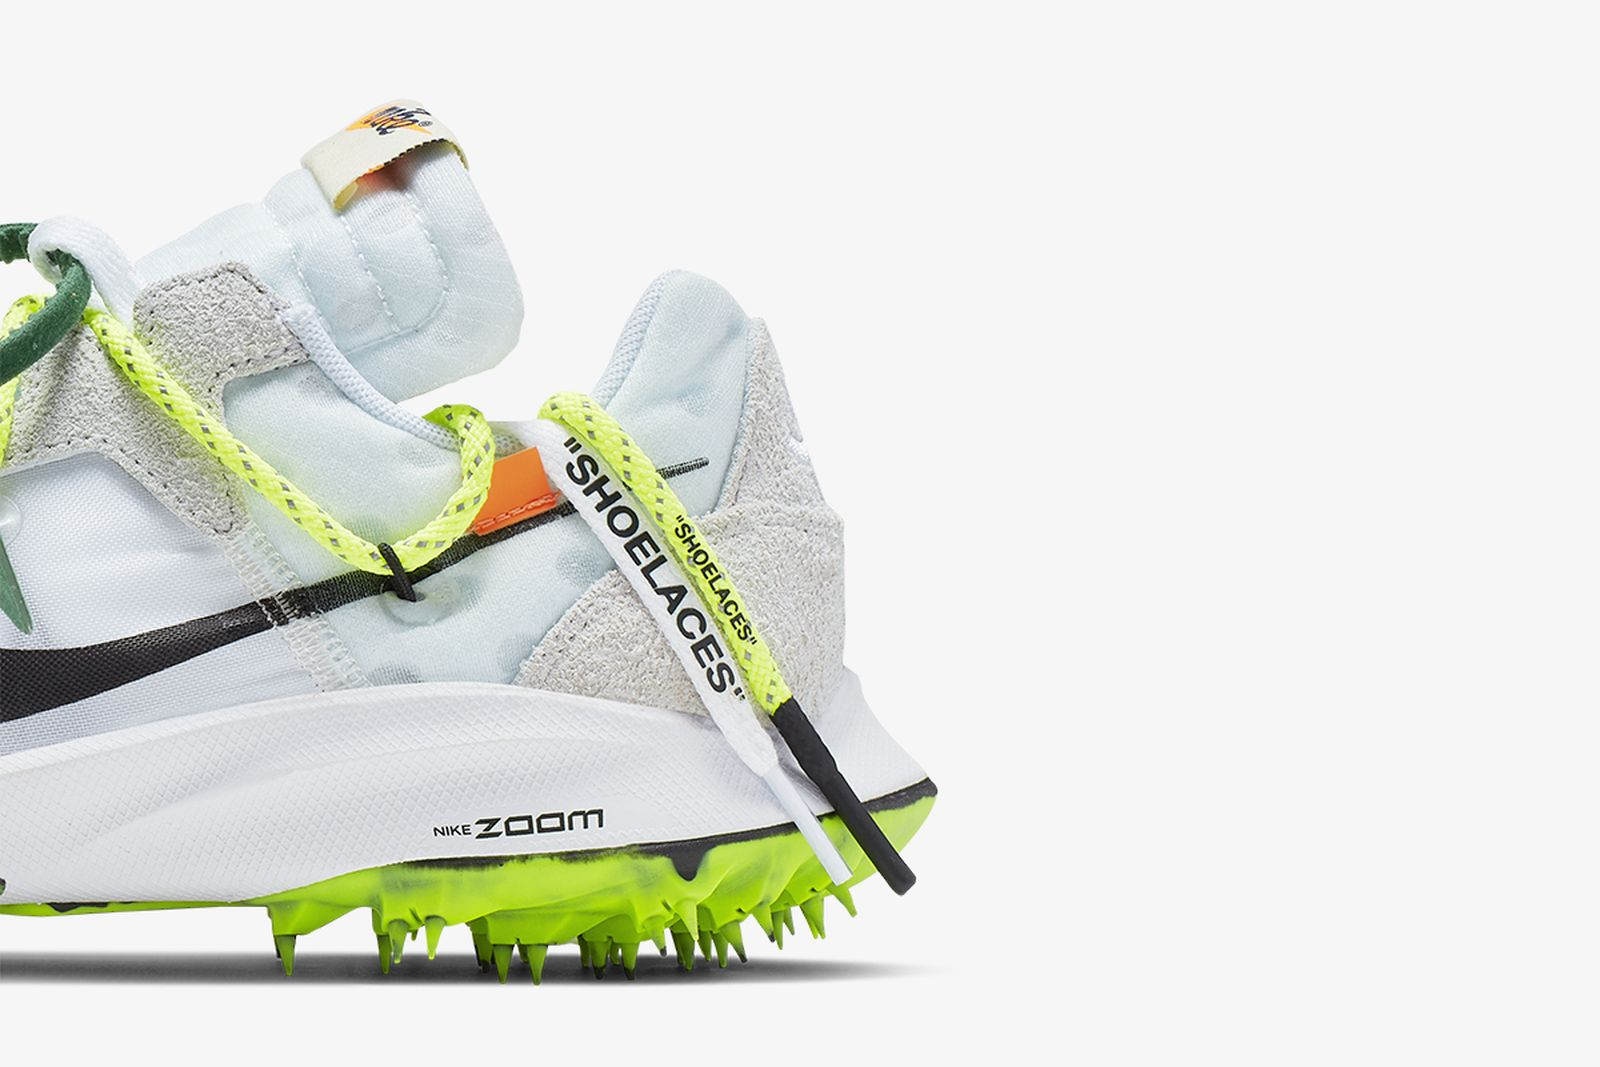 off white nike zoom terra kiger 5 release date price OFF-WHITE c/o Virgil Abloh